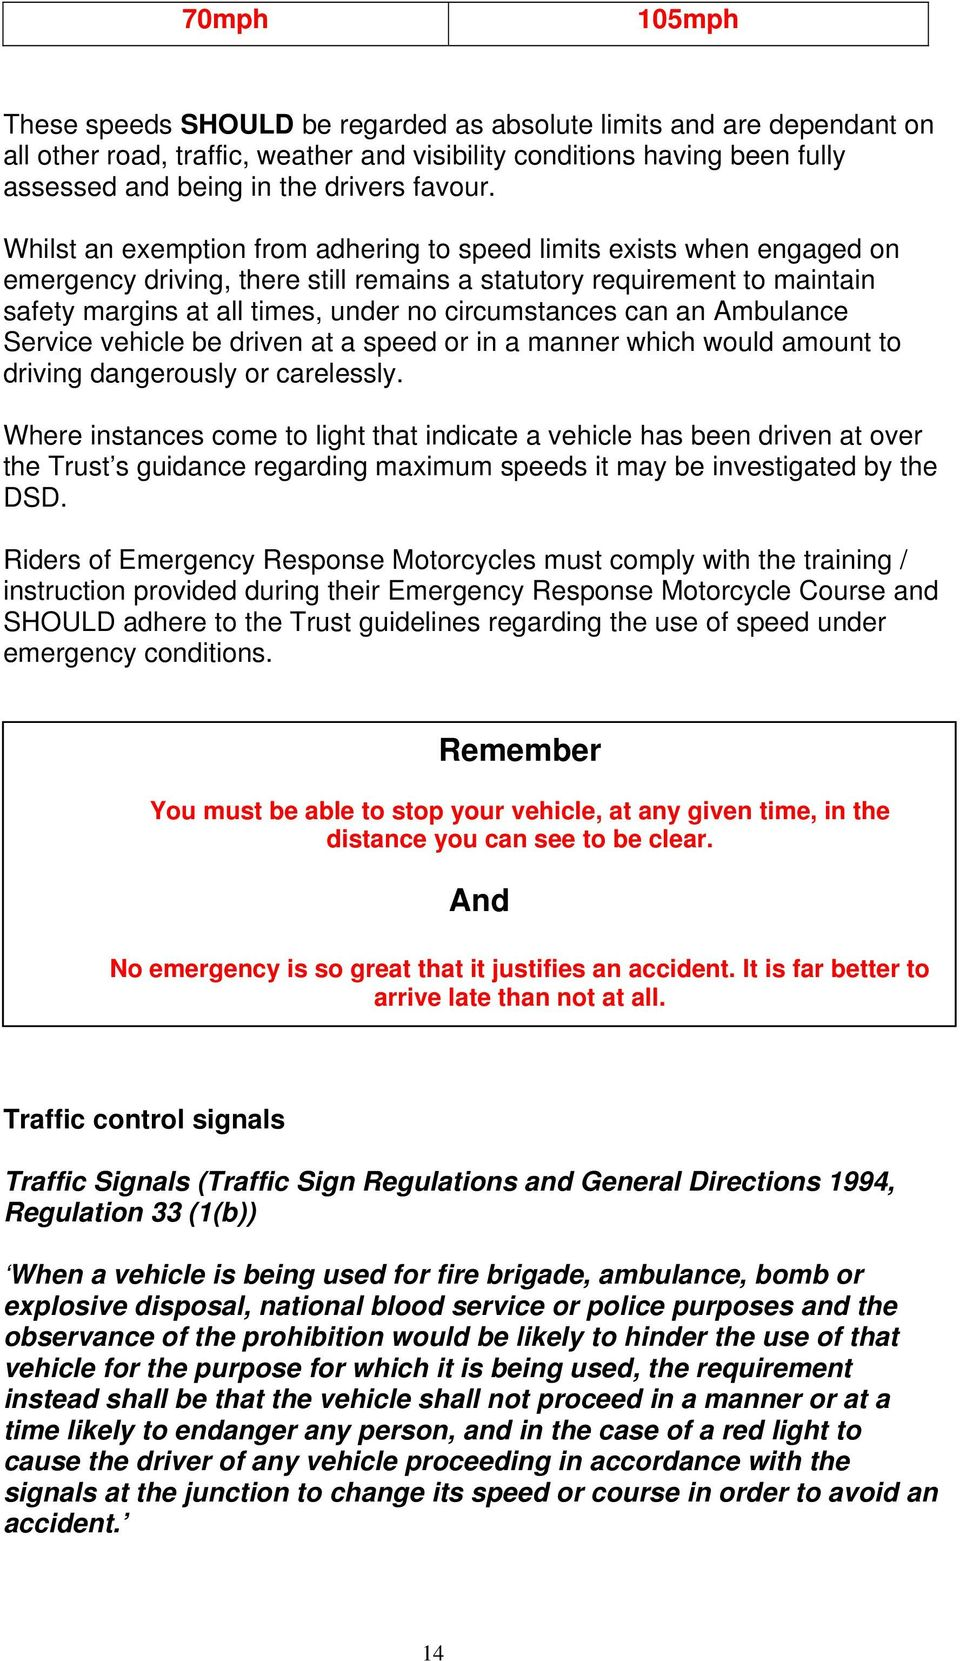 Whilst an exemption from adhering to speed limits exists when engaged on emergency driving, there still remains a statutory requirement to maintain safety margins at all times, under no circumstances